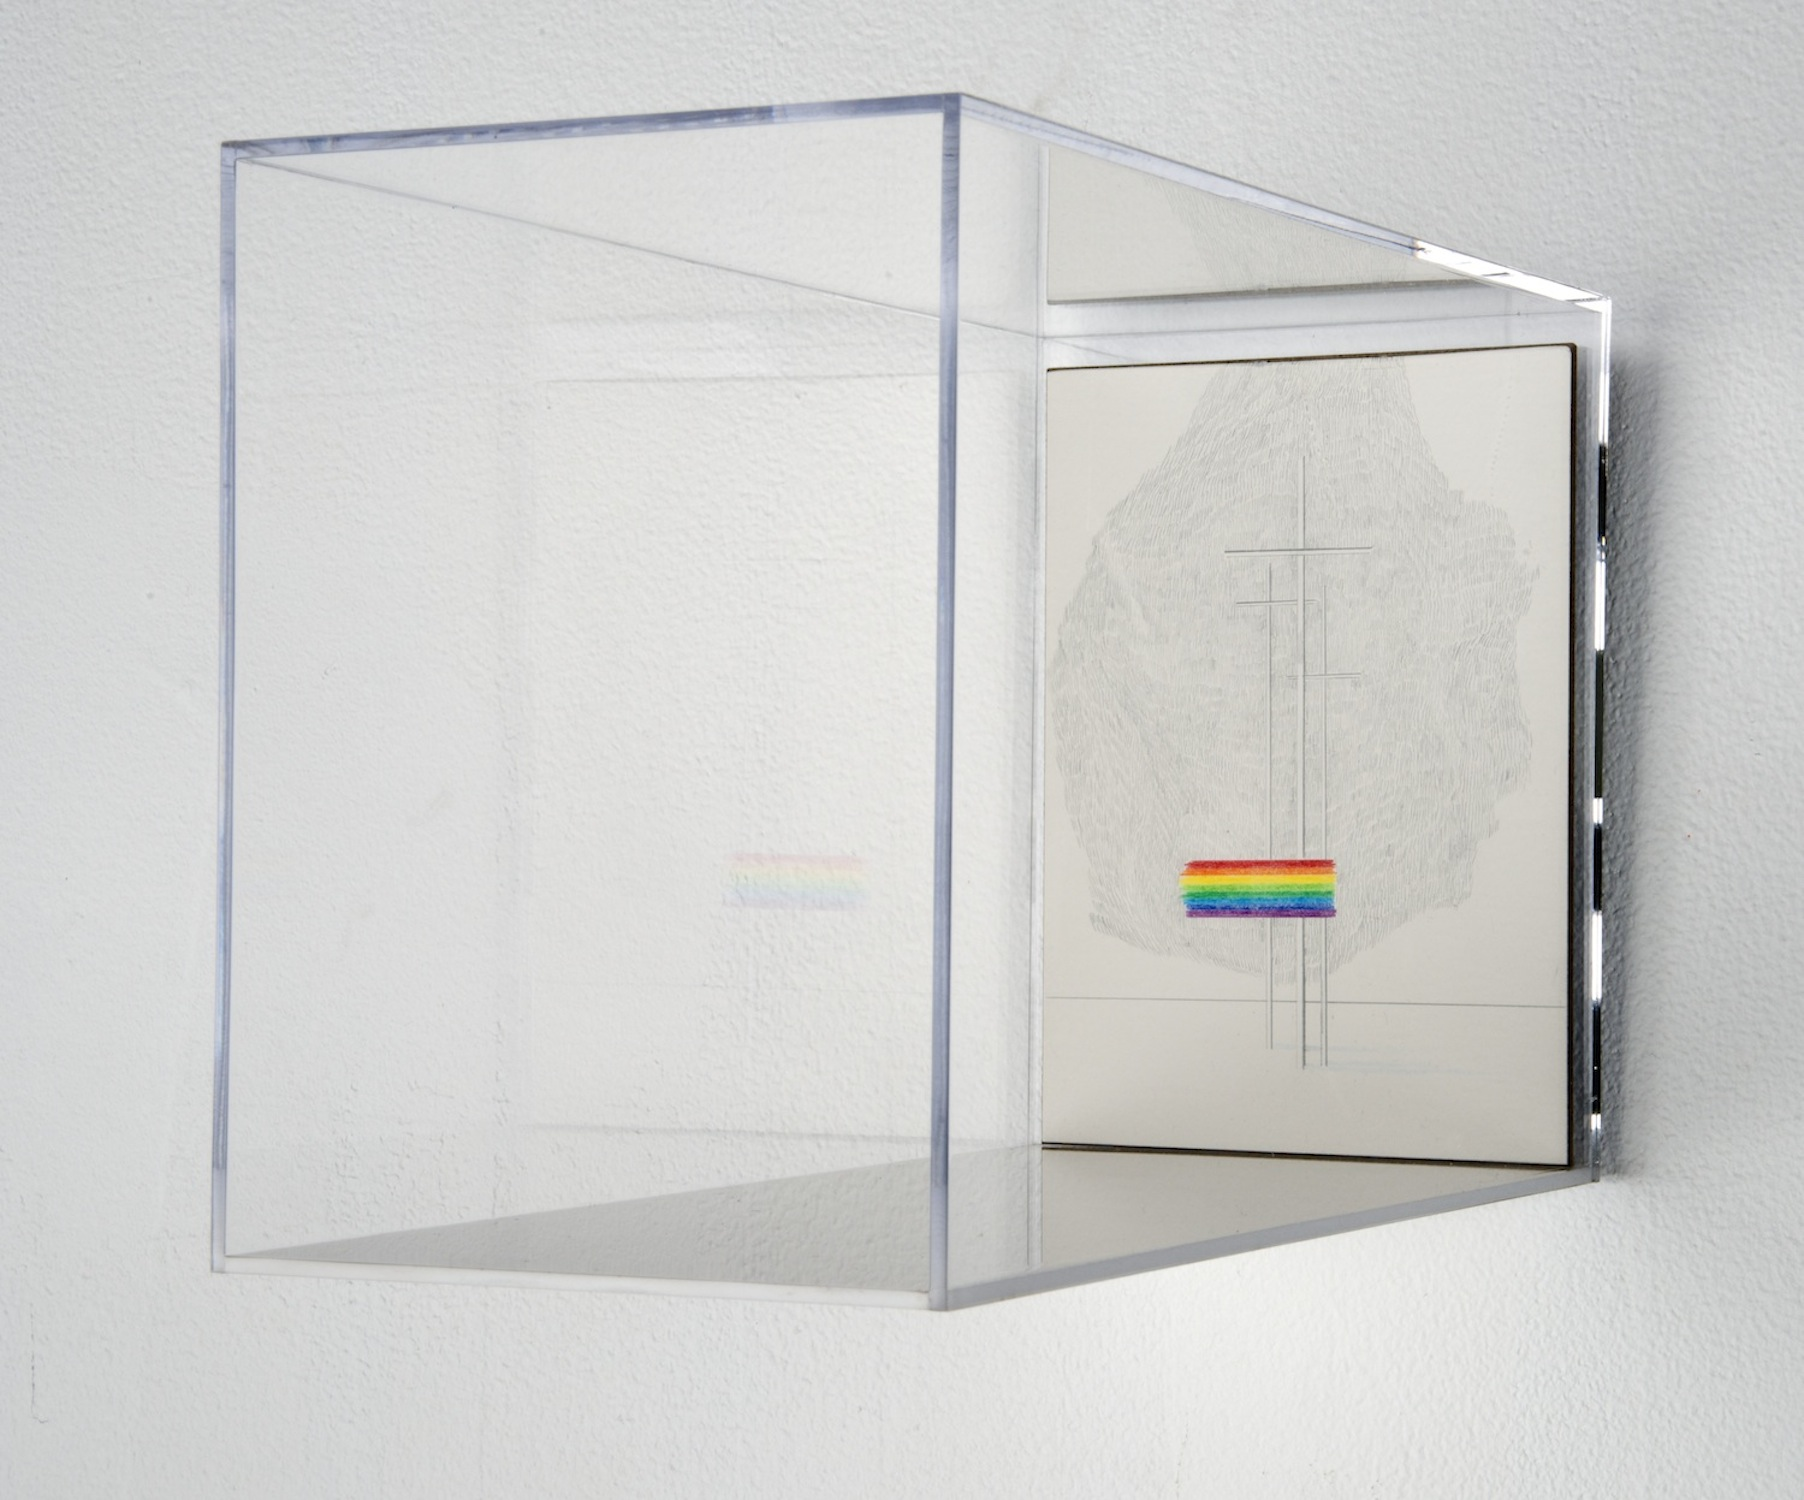 GOD'S COVENANT WITH HIMSELF IN A PRISM 04  colored pencil on clayboard, plexiglass  12in. x 5in. x 7in.